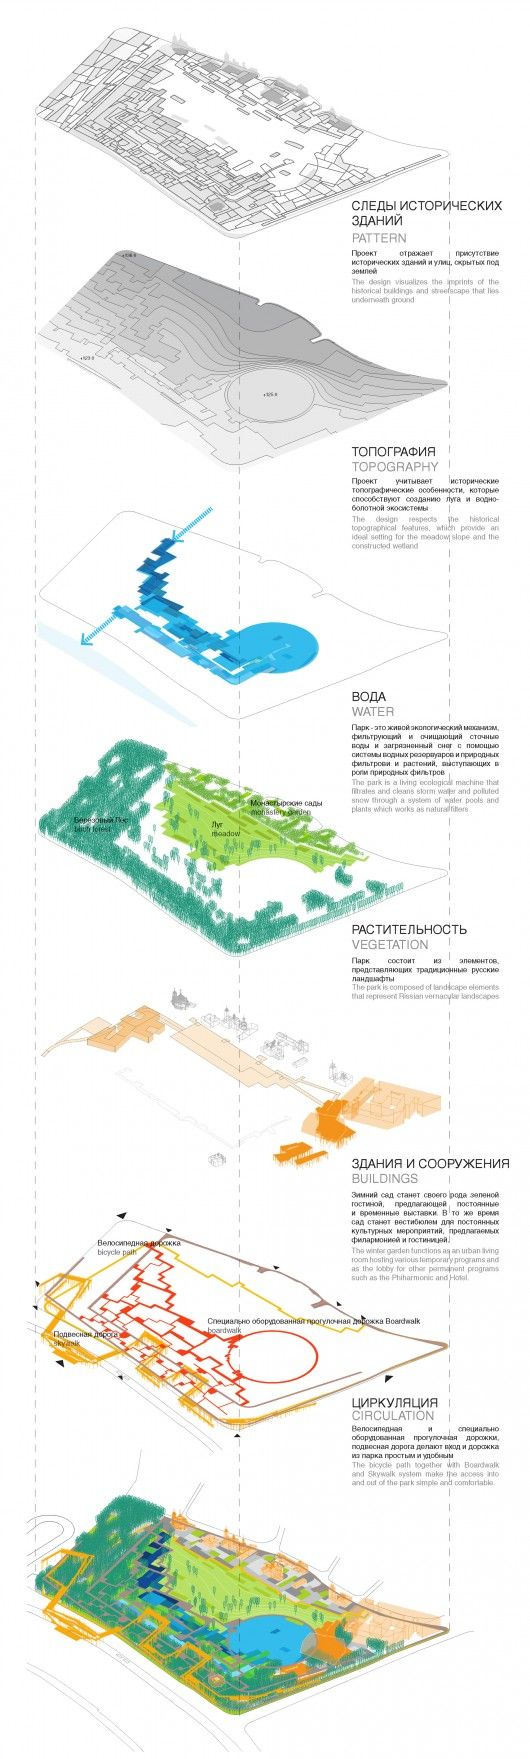 DIA_Competition Entry: Zaryadye Park / Turenscape | ArchDaily